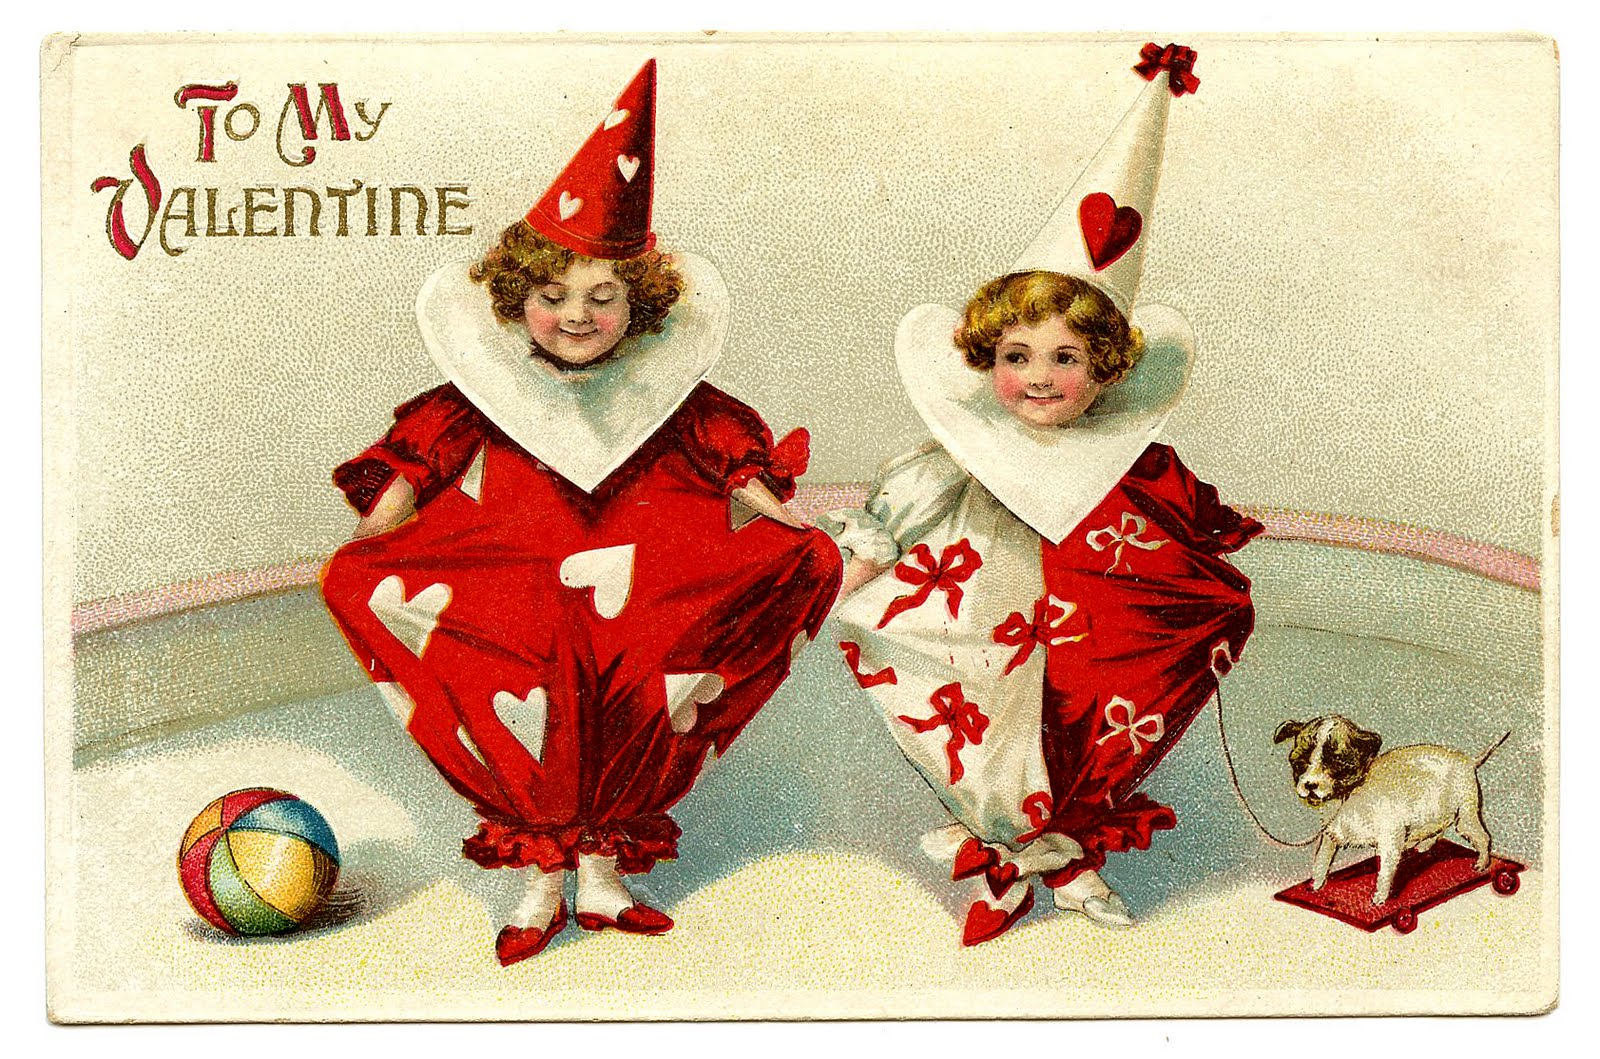 Valentine S Day Vintage Toys : Vintage valentine s day clip art adorable clown children